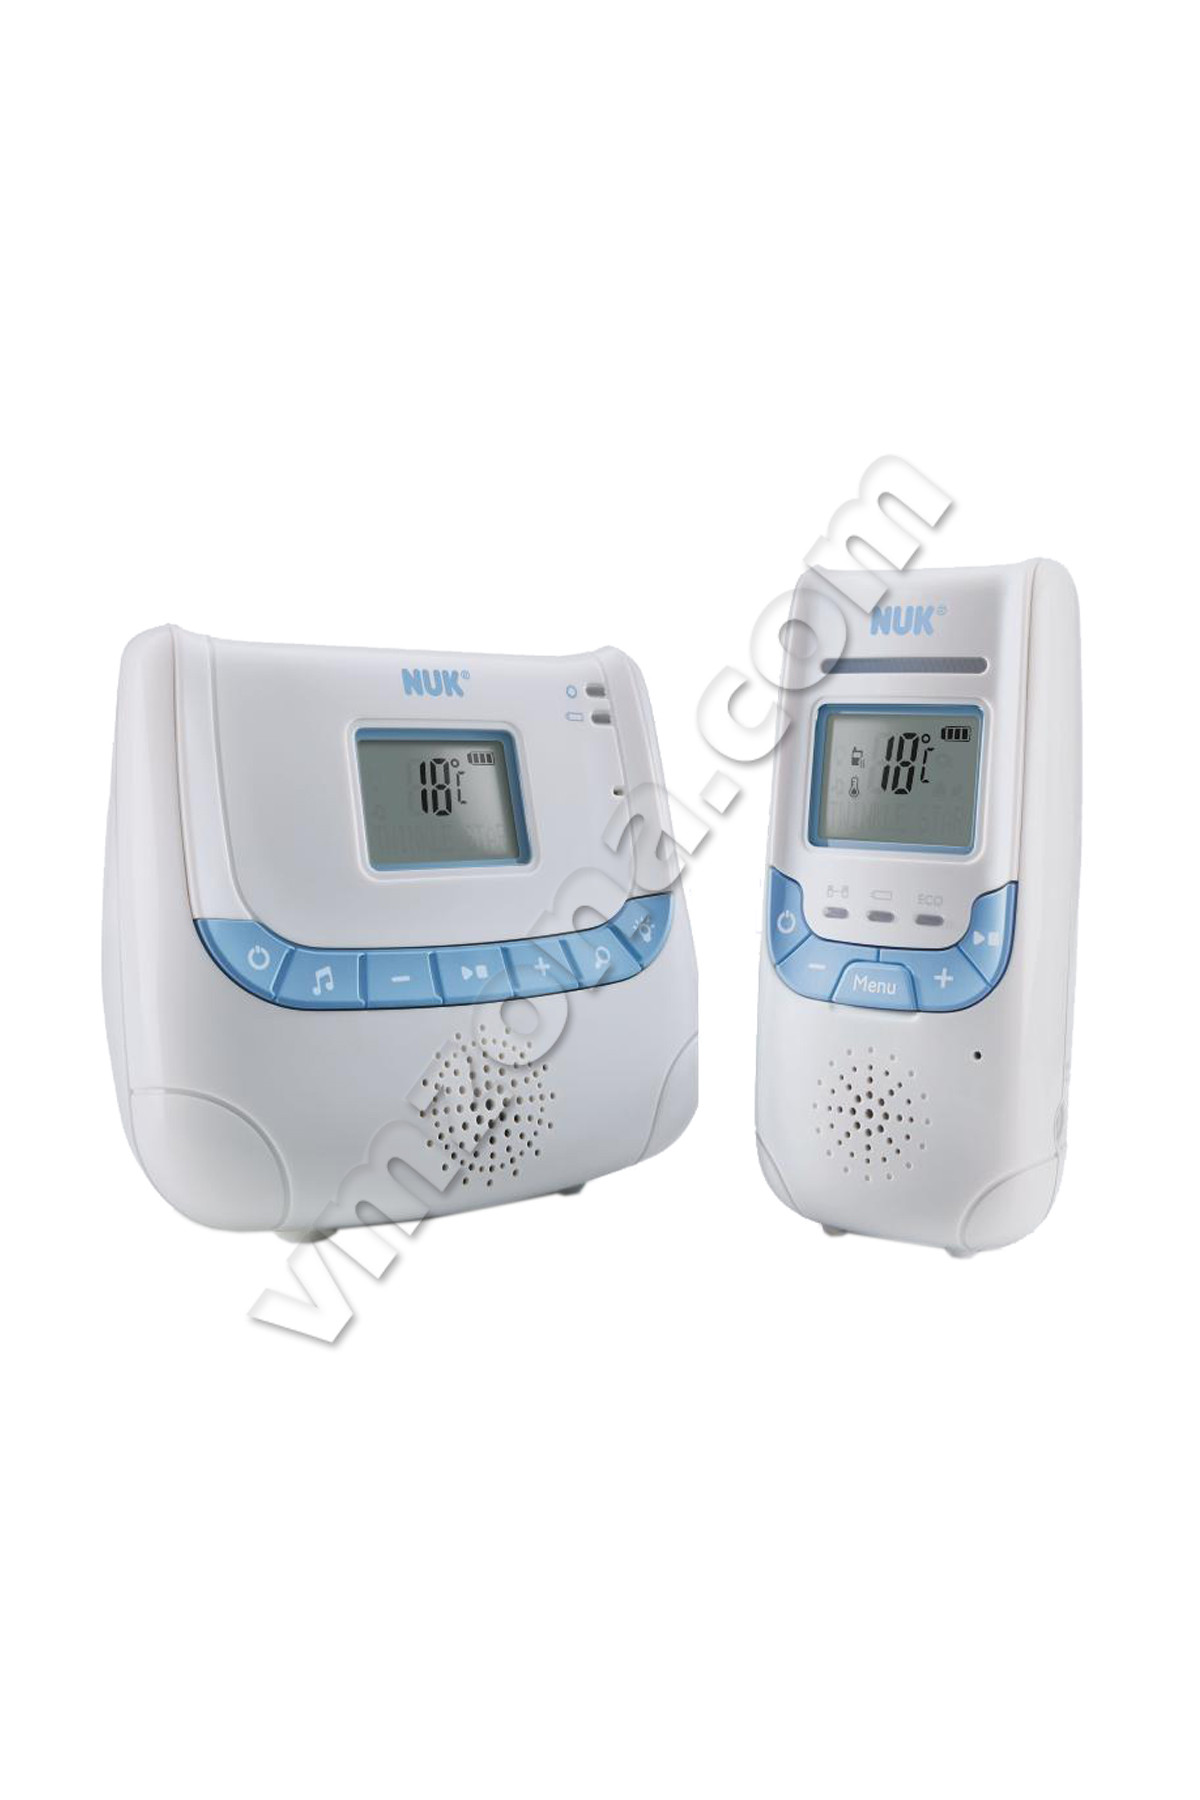 nuk baby monitor dect eco control display. Black Bedroom Furniture Sets. Home Design Ideas